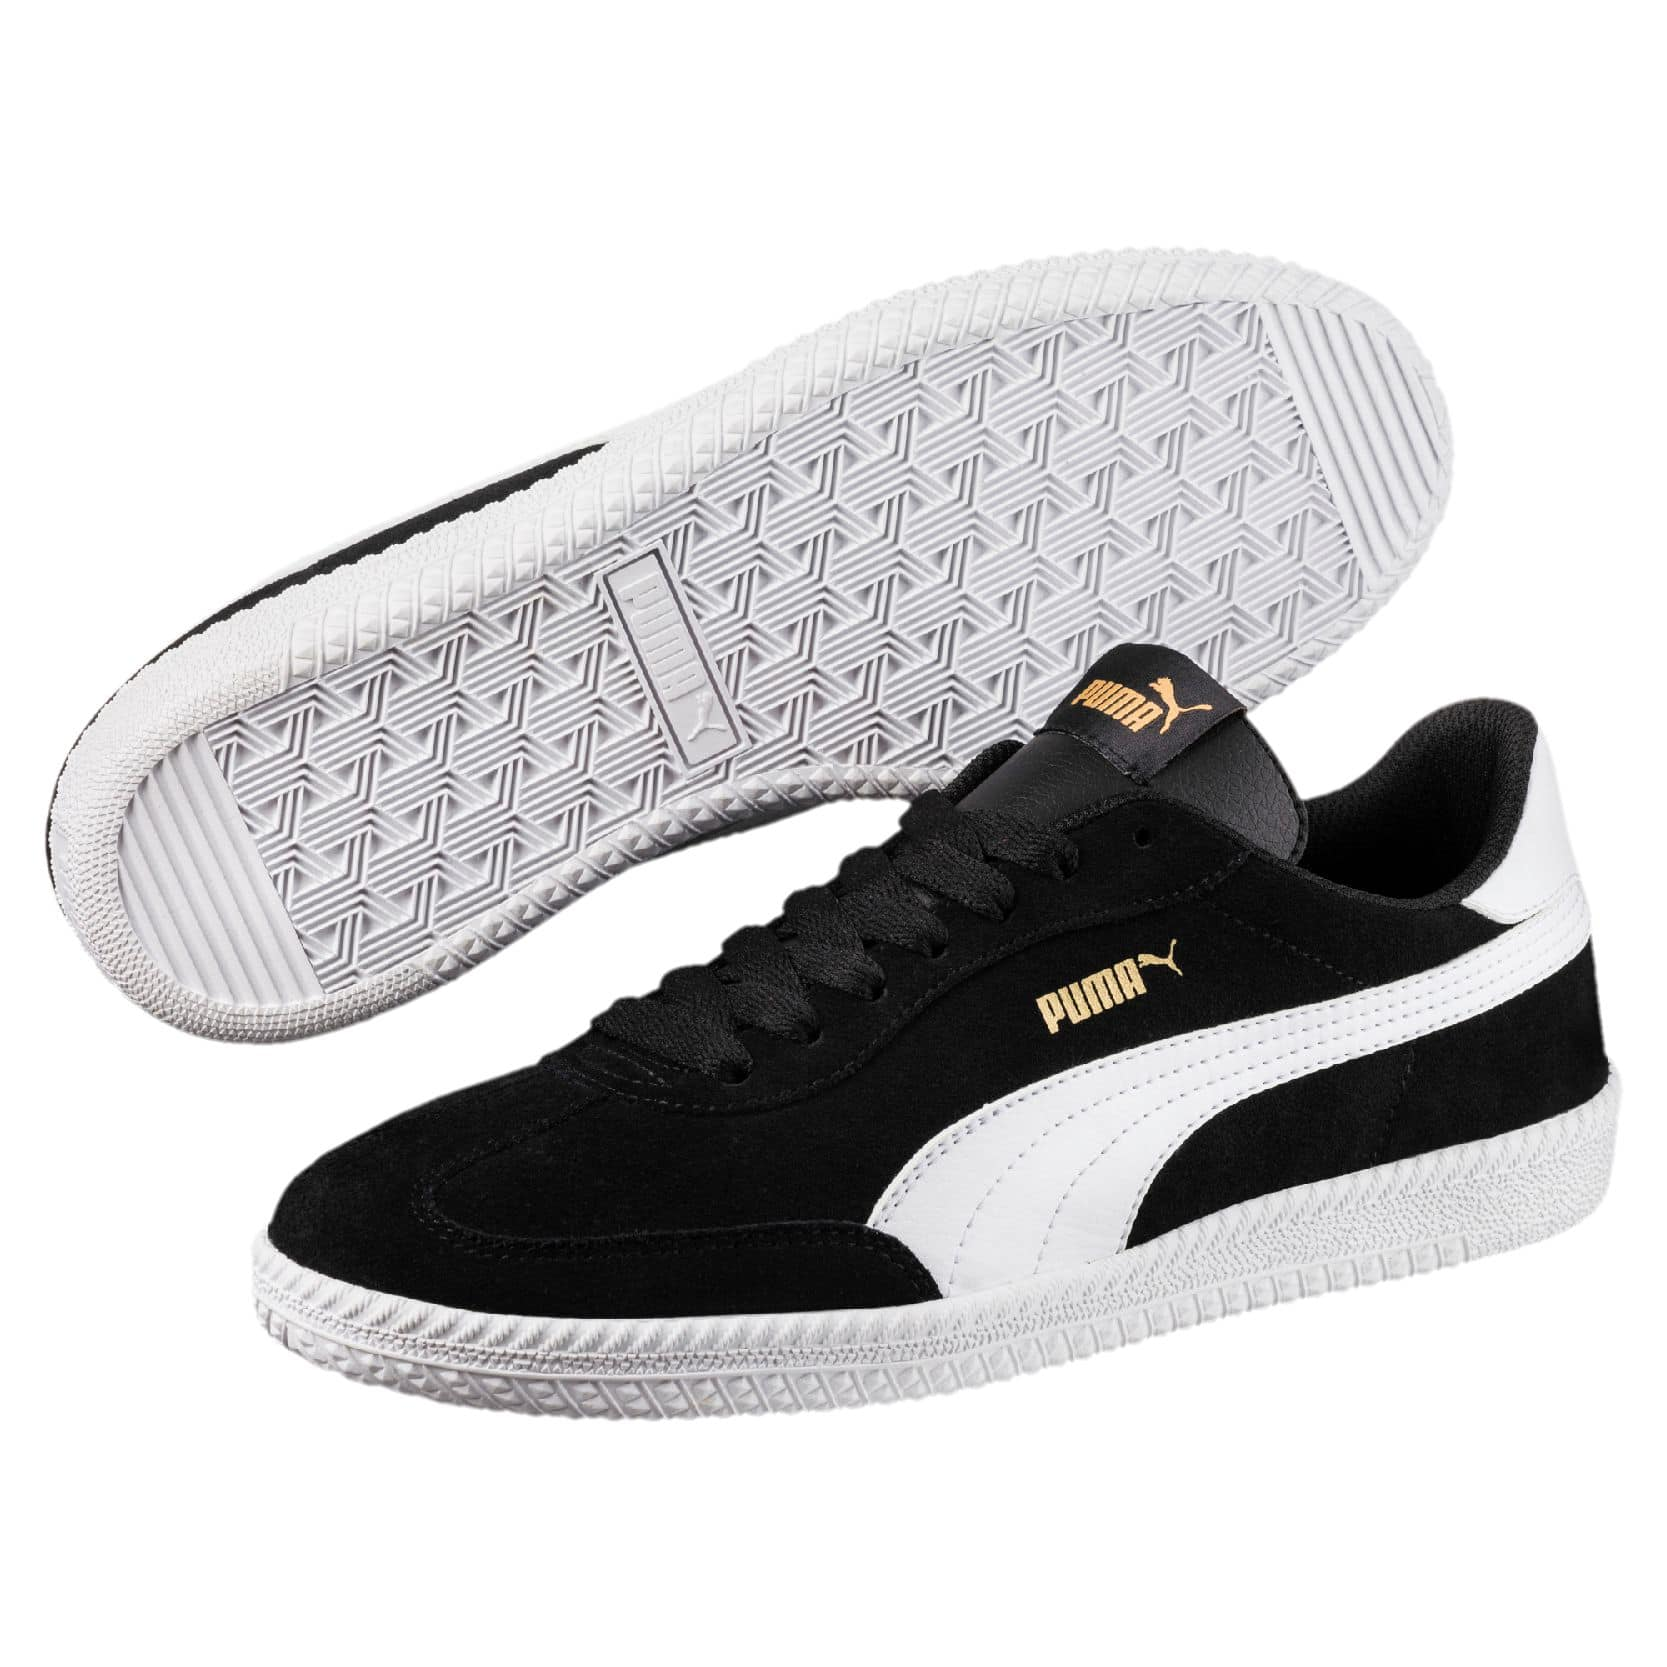 Astro Cup Suede Sneakers by puma $24